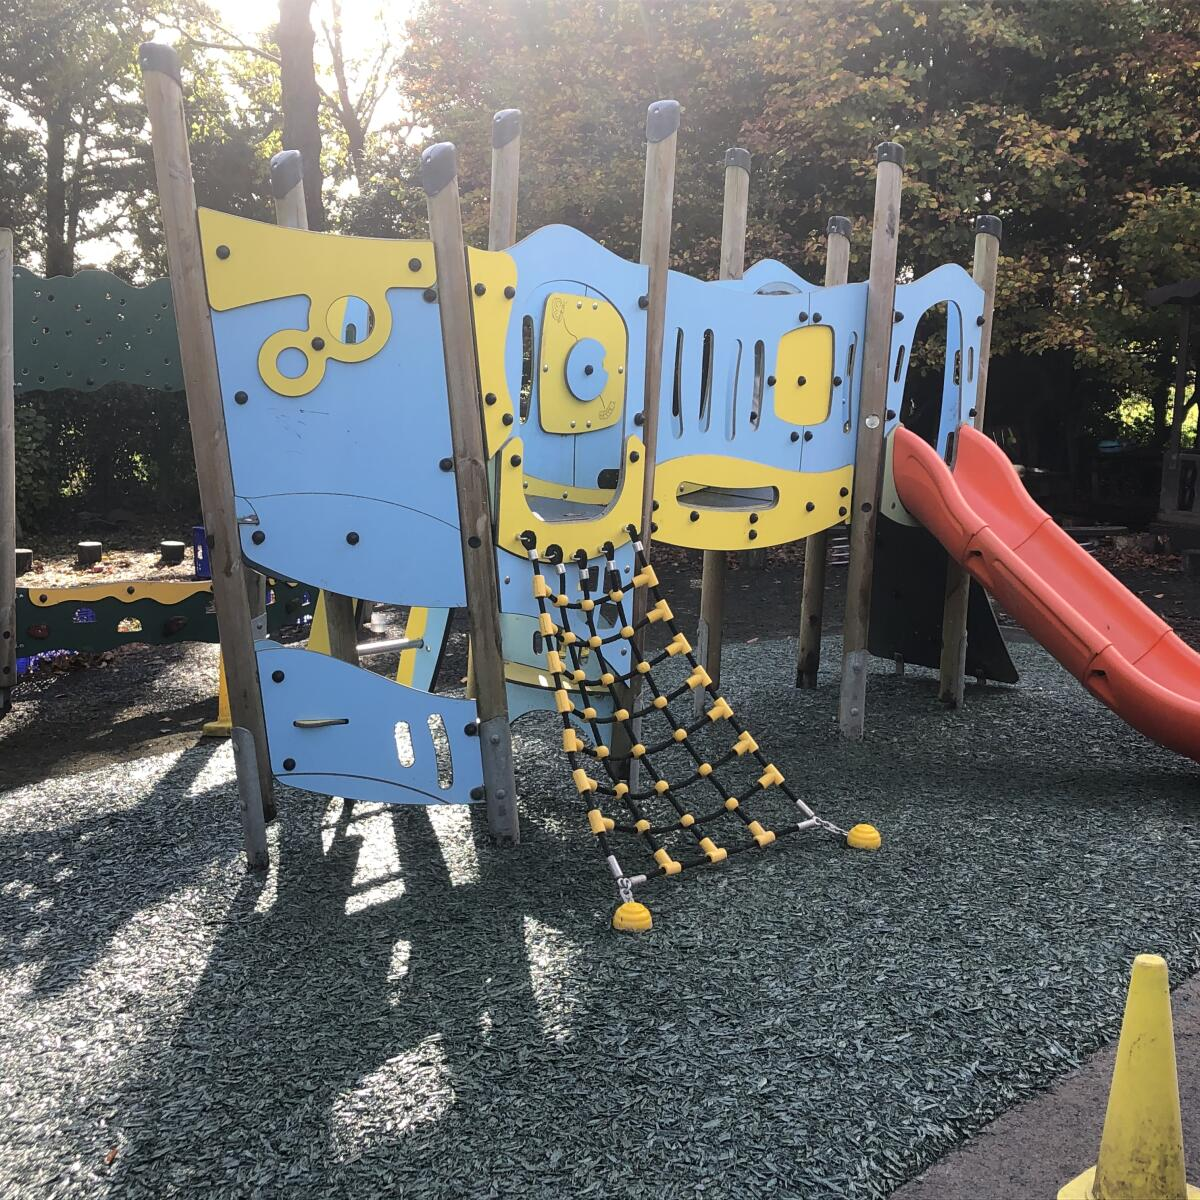 Playdale Playgrounds  5 star review on 12th November 2020